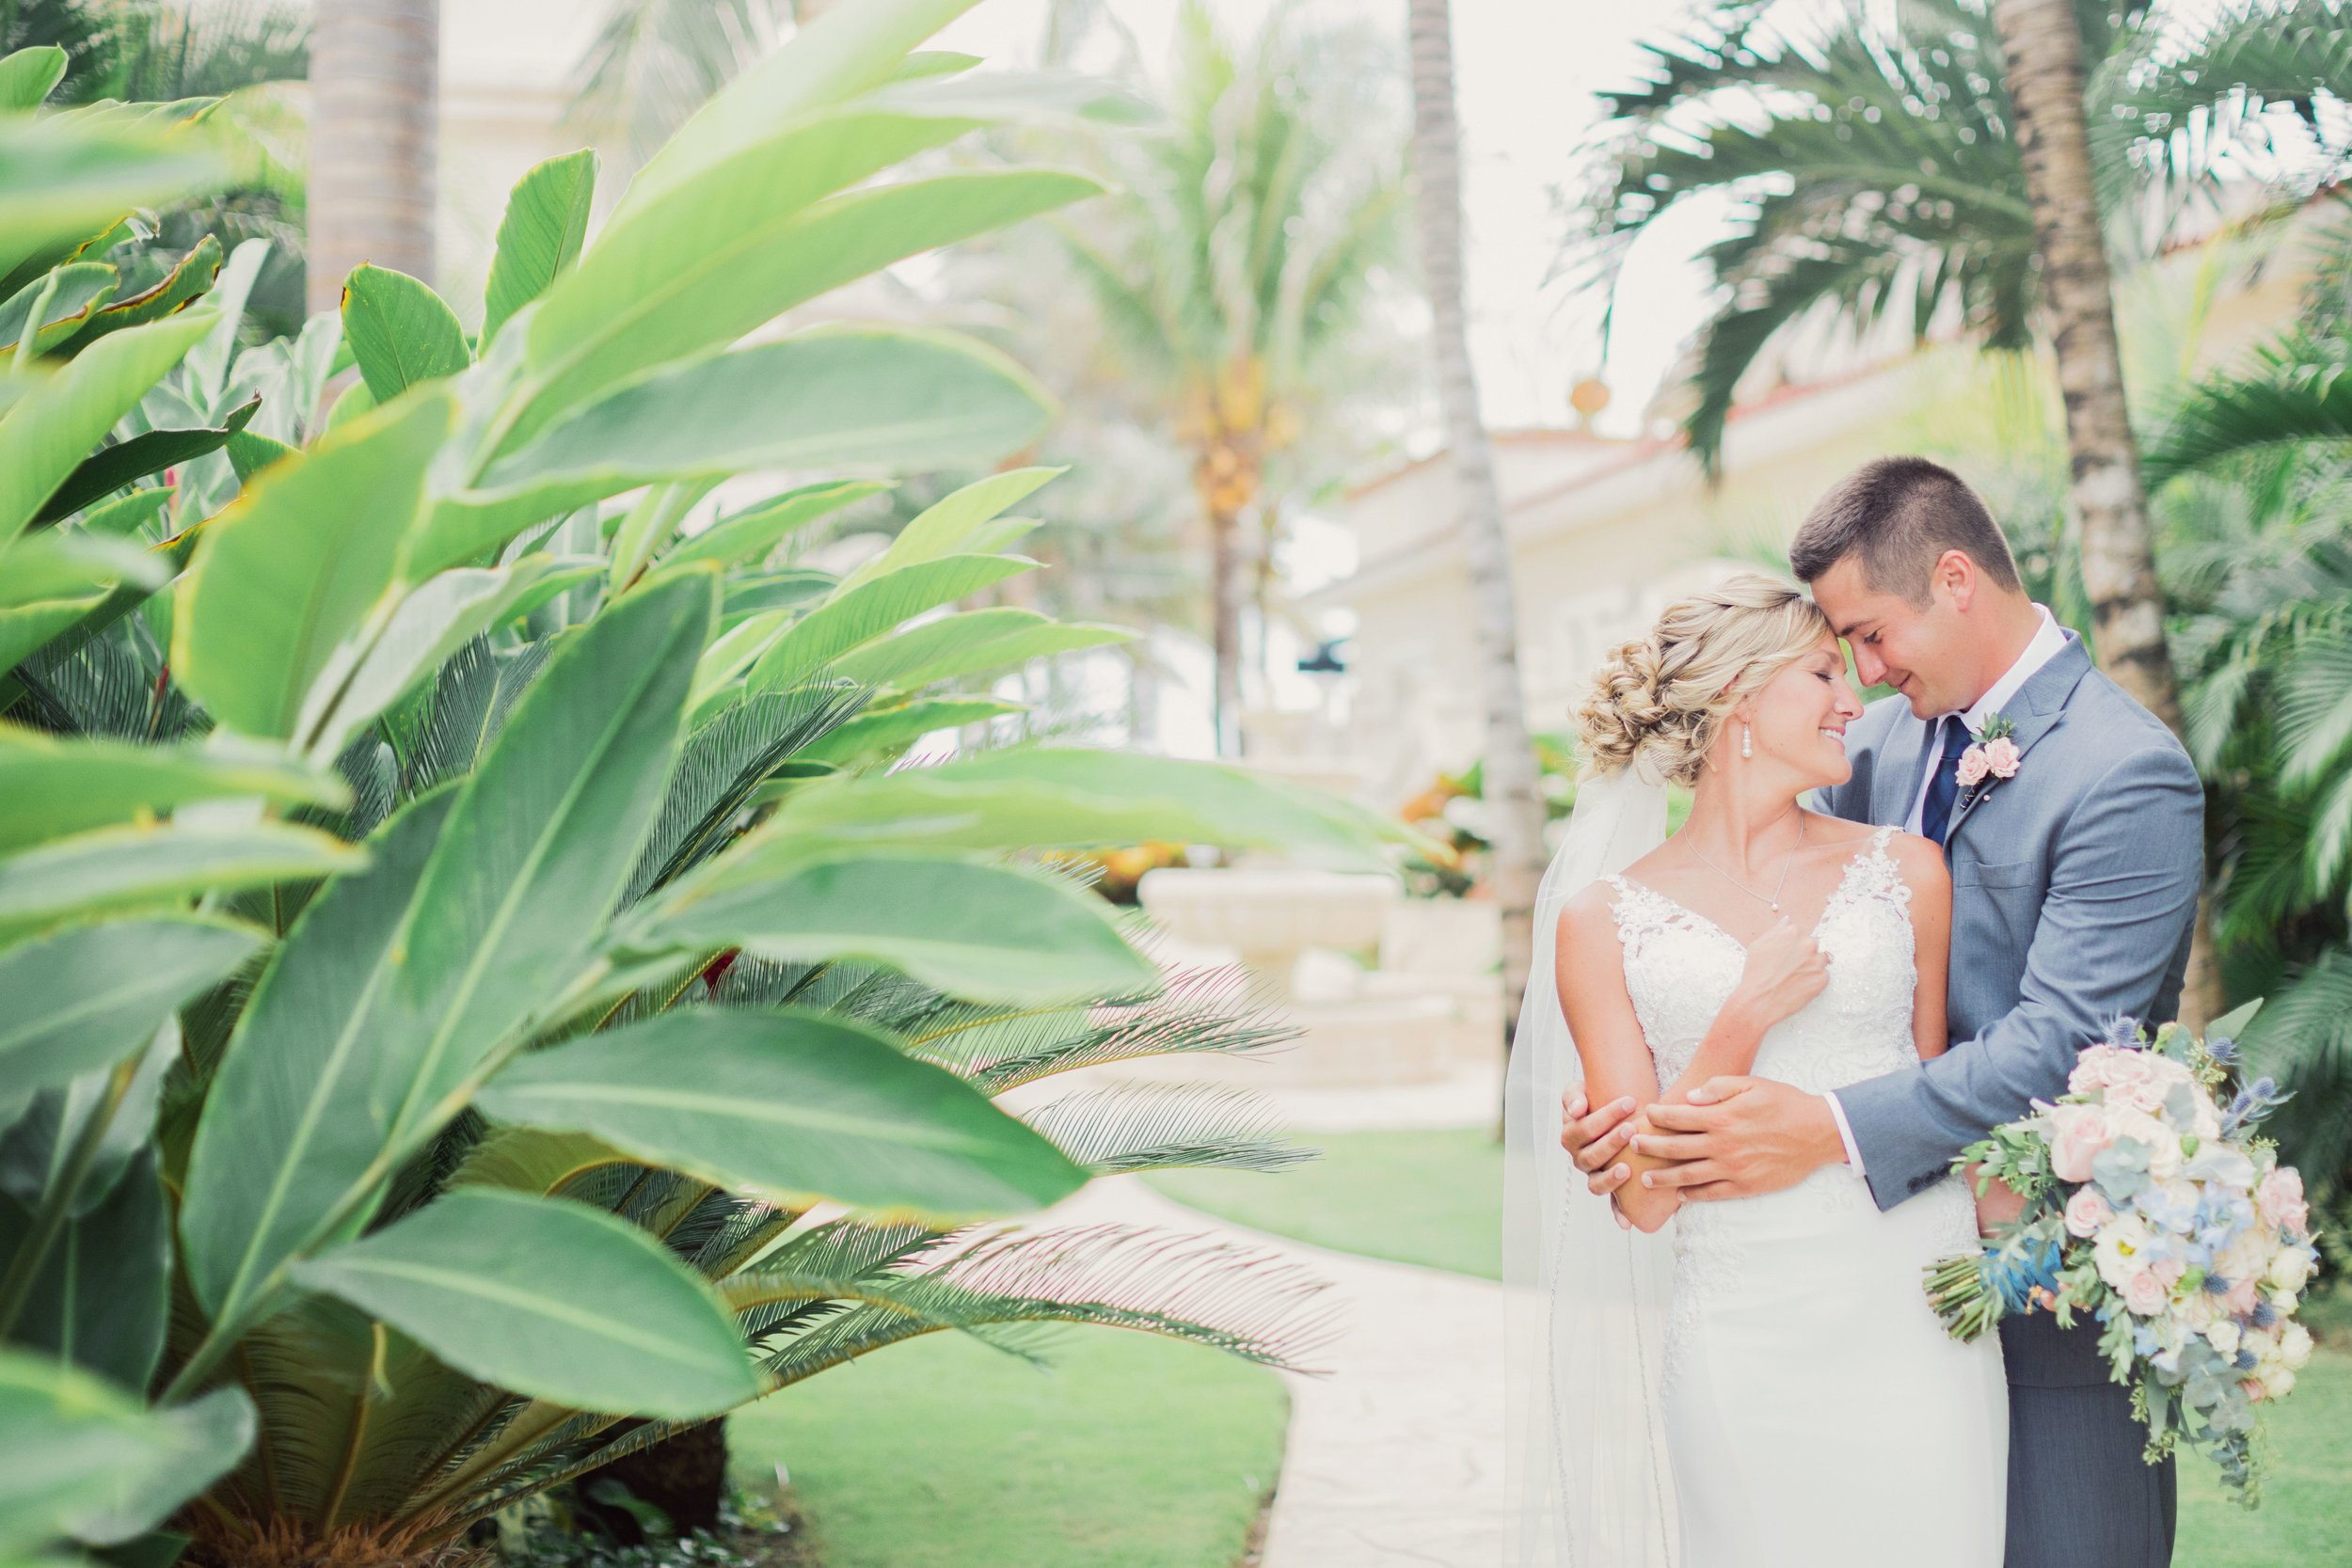 cancun-wedding-venue-villa-la-joya-69 copy-websize.jpg